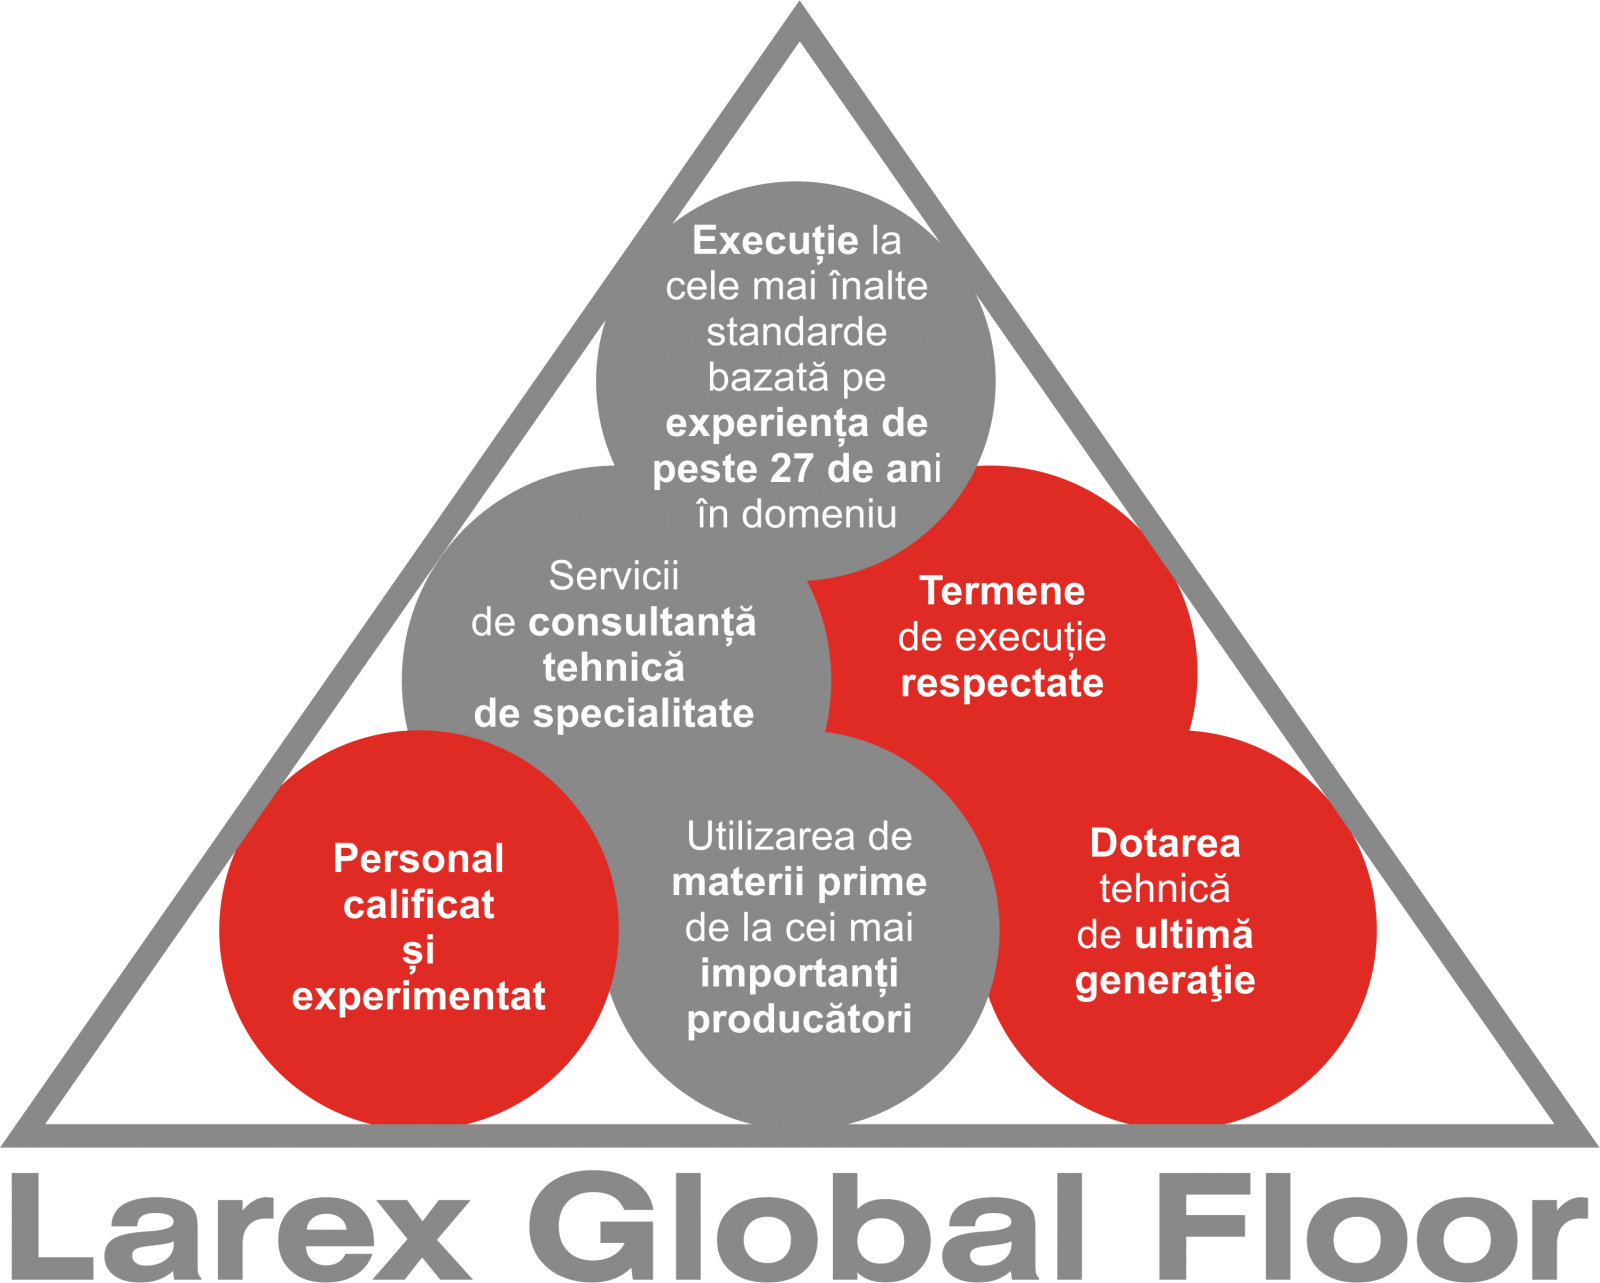 baza succesului Larex Global Floor